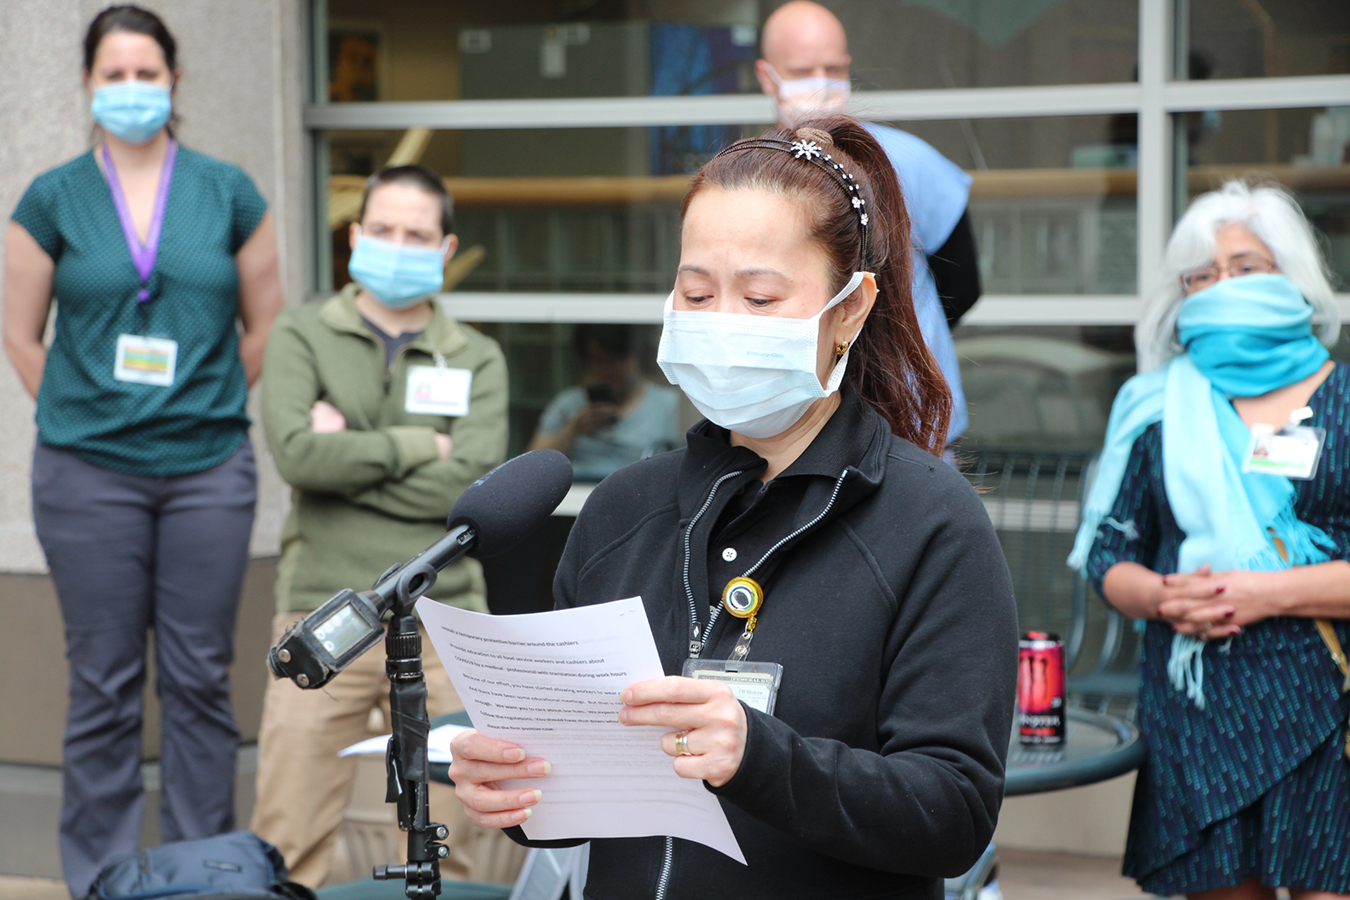 Hospital Workers Complain of Minimal Disclosure After COVID Exposures